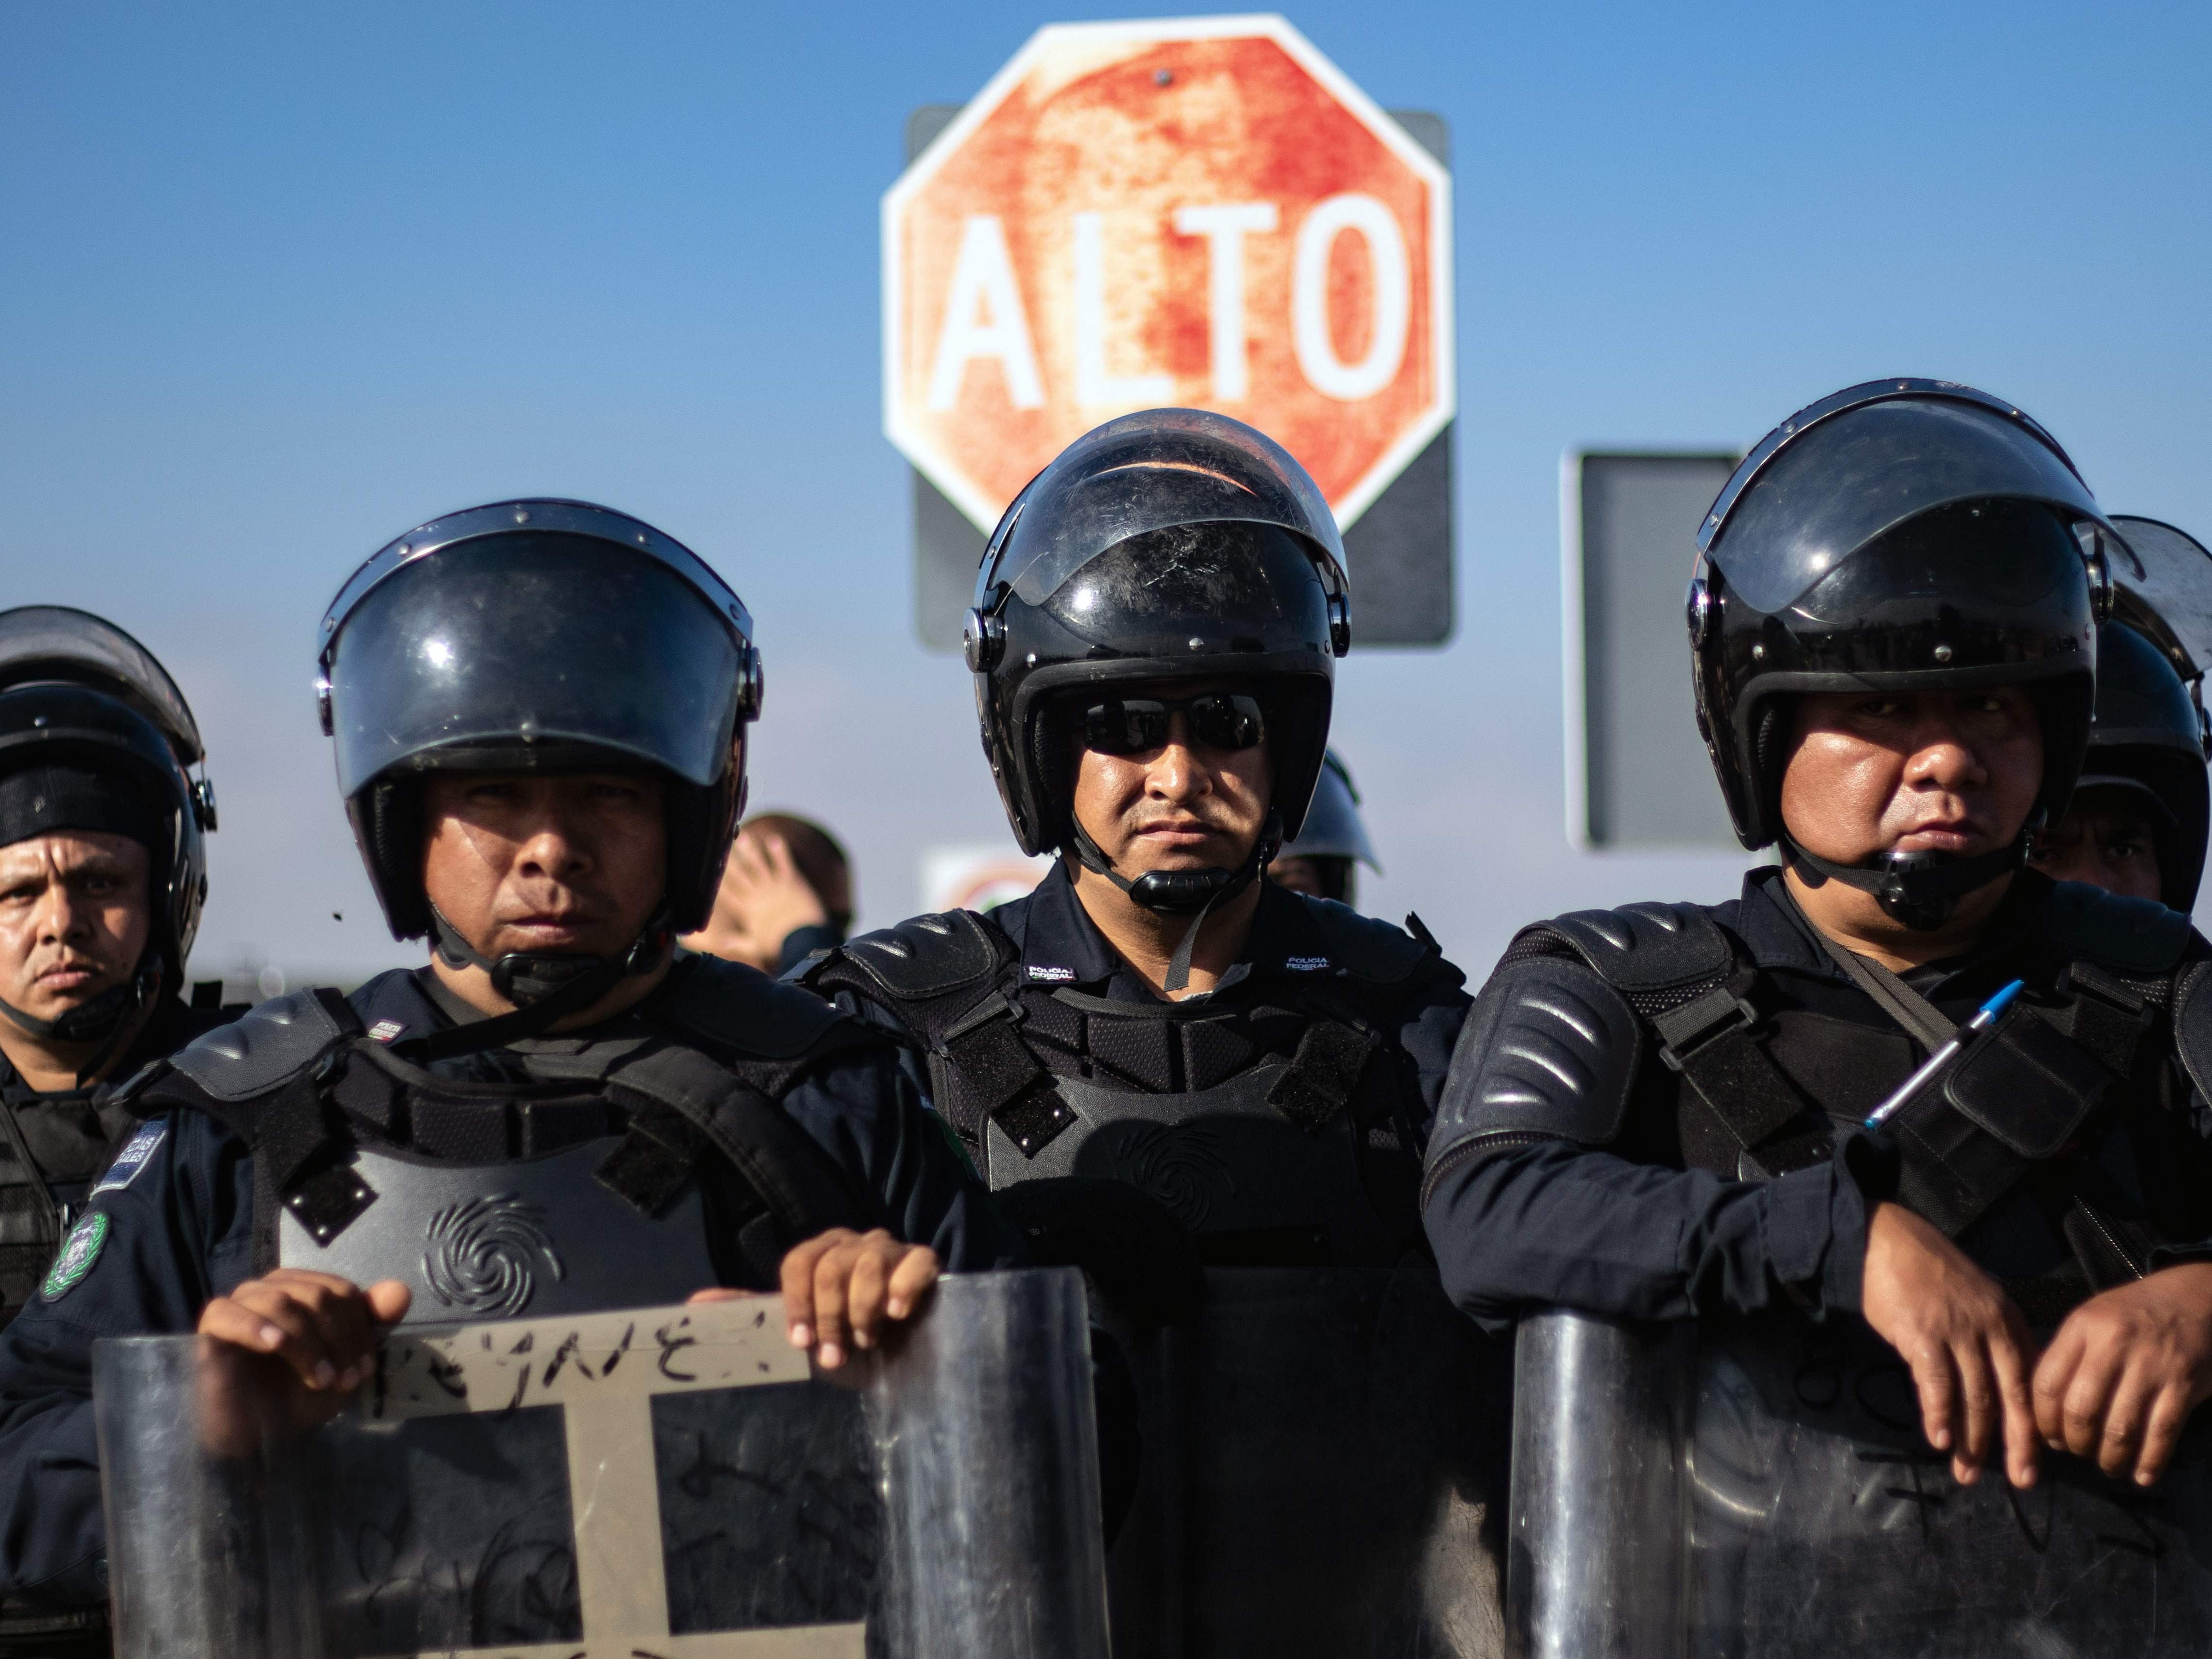 Federal Riot Police stand guard as a group of Central American migrants march to the U.S. Consulate to deliver a petition, in Tijuana, Baja California state, Mexico on December 11, 2018. - Thousands of Central American migrants, mostly Hondurans, have trekked for over a month in the hopes of reaching the United States.